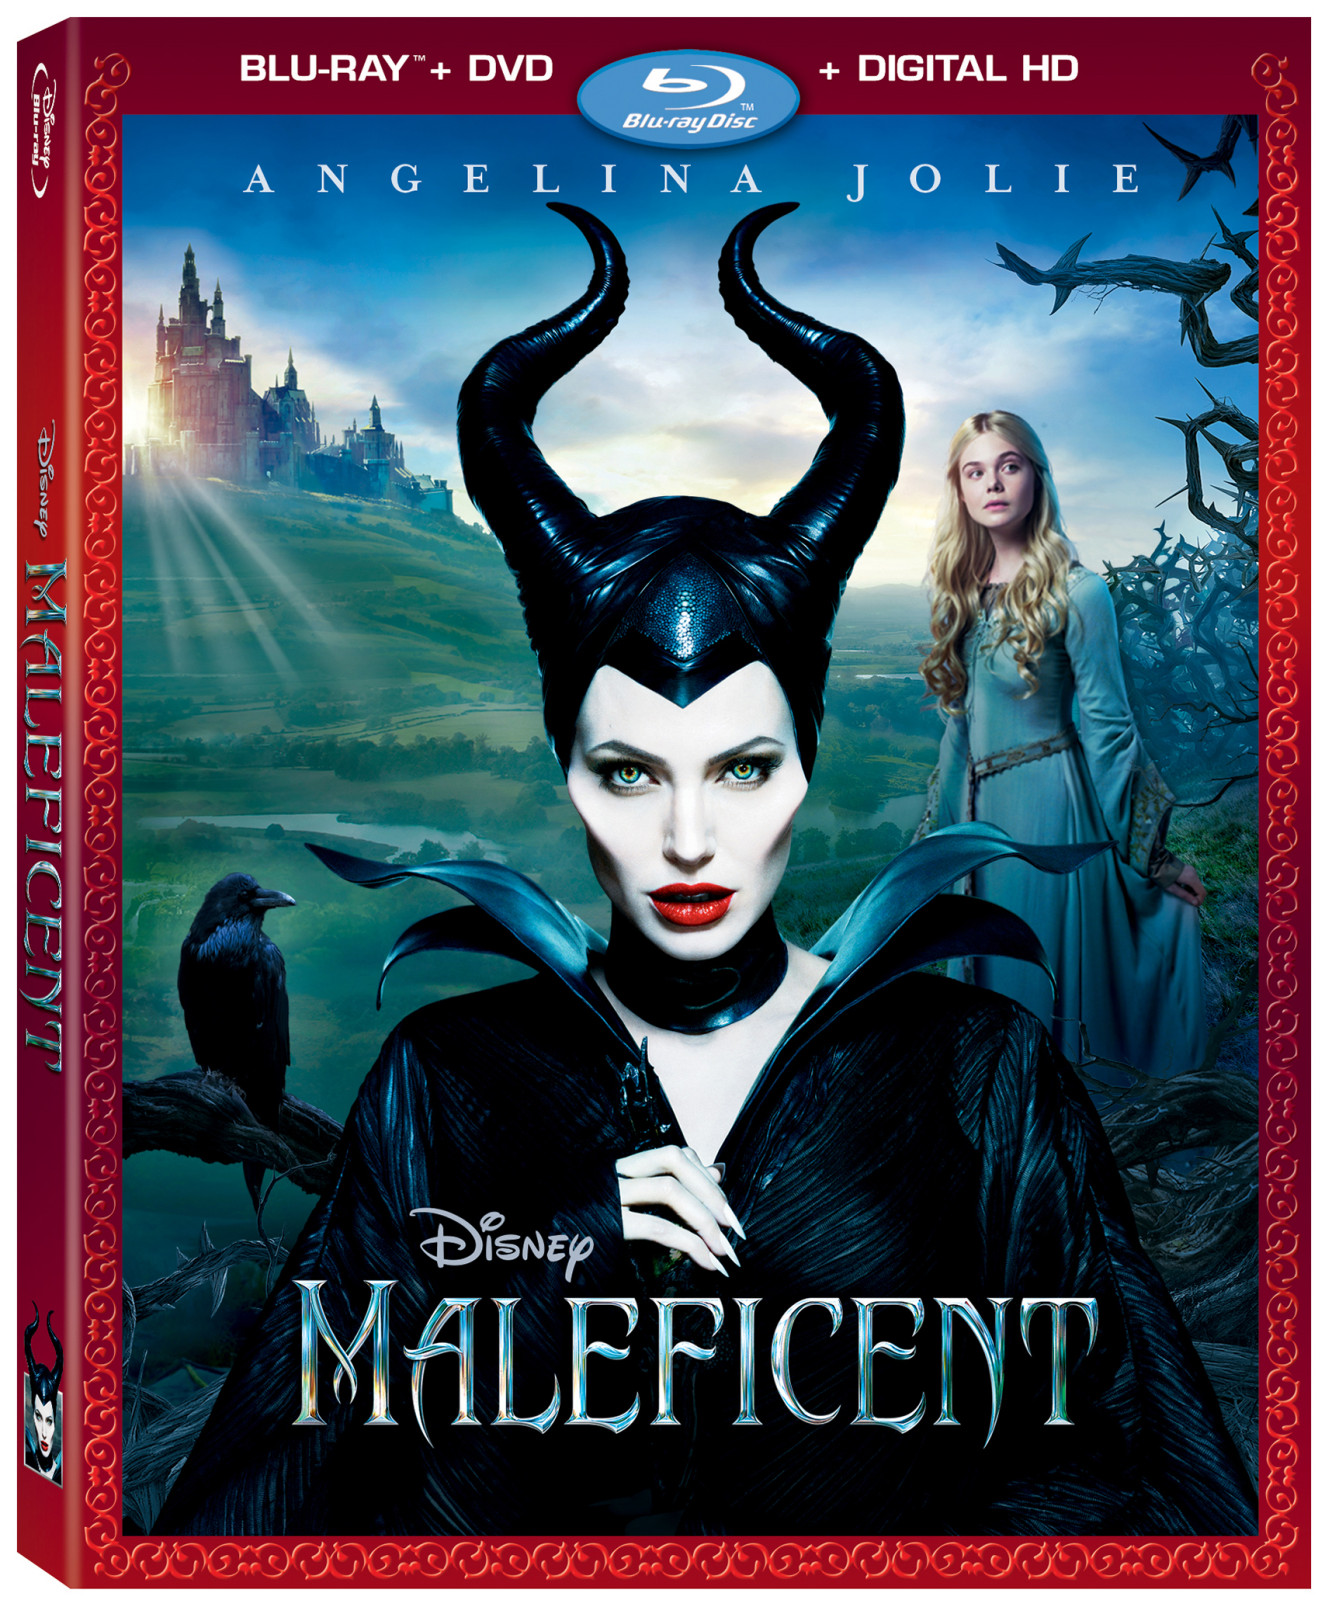 Maleficent DVD Blu-Ray